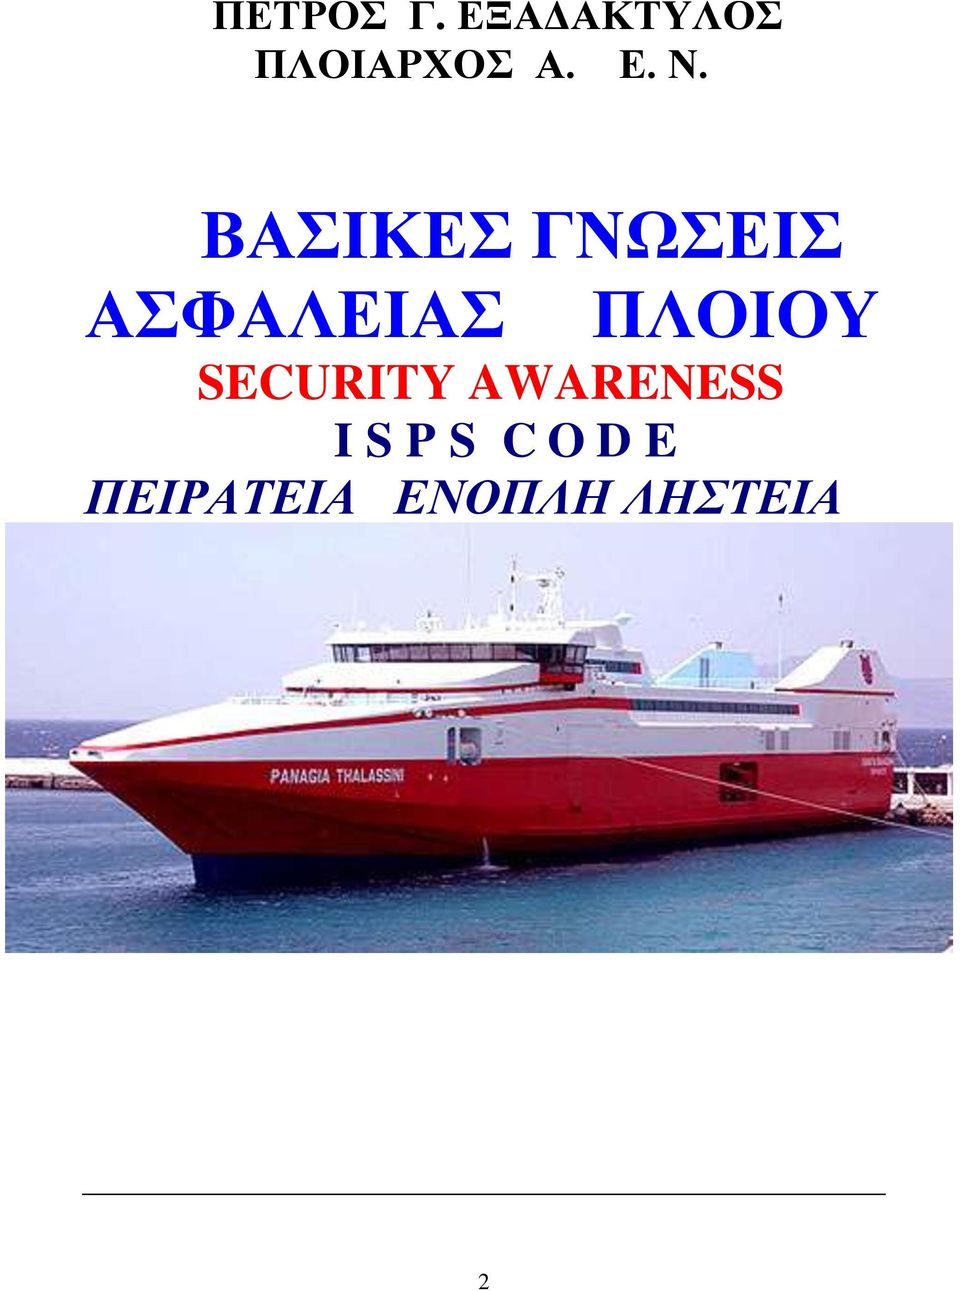 ΠΛΟΙΟΥ SECURITY AWARENESS I S P S